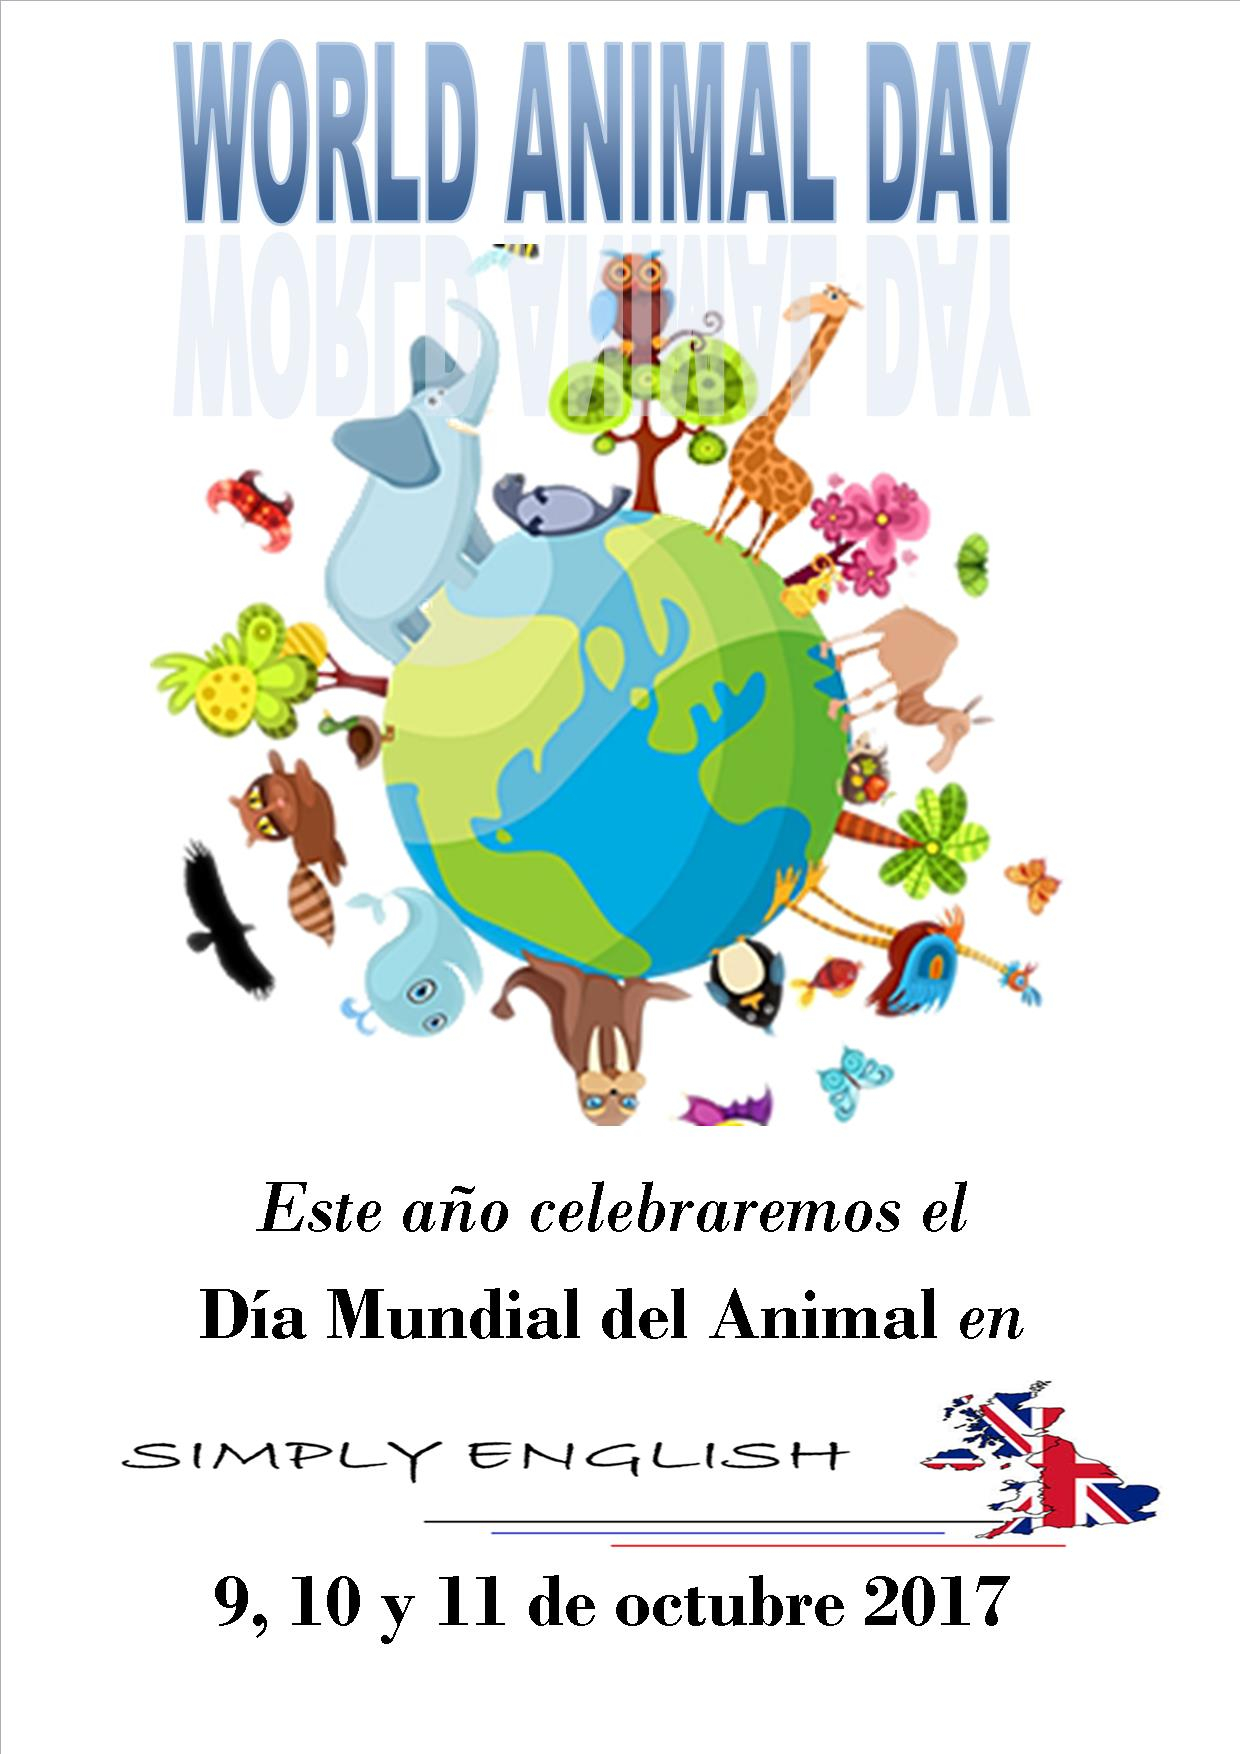 World Animal Day Awareness & Celebration